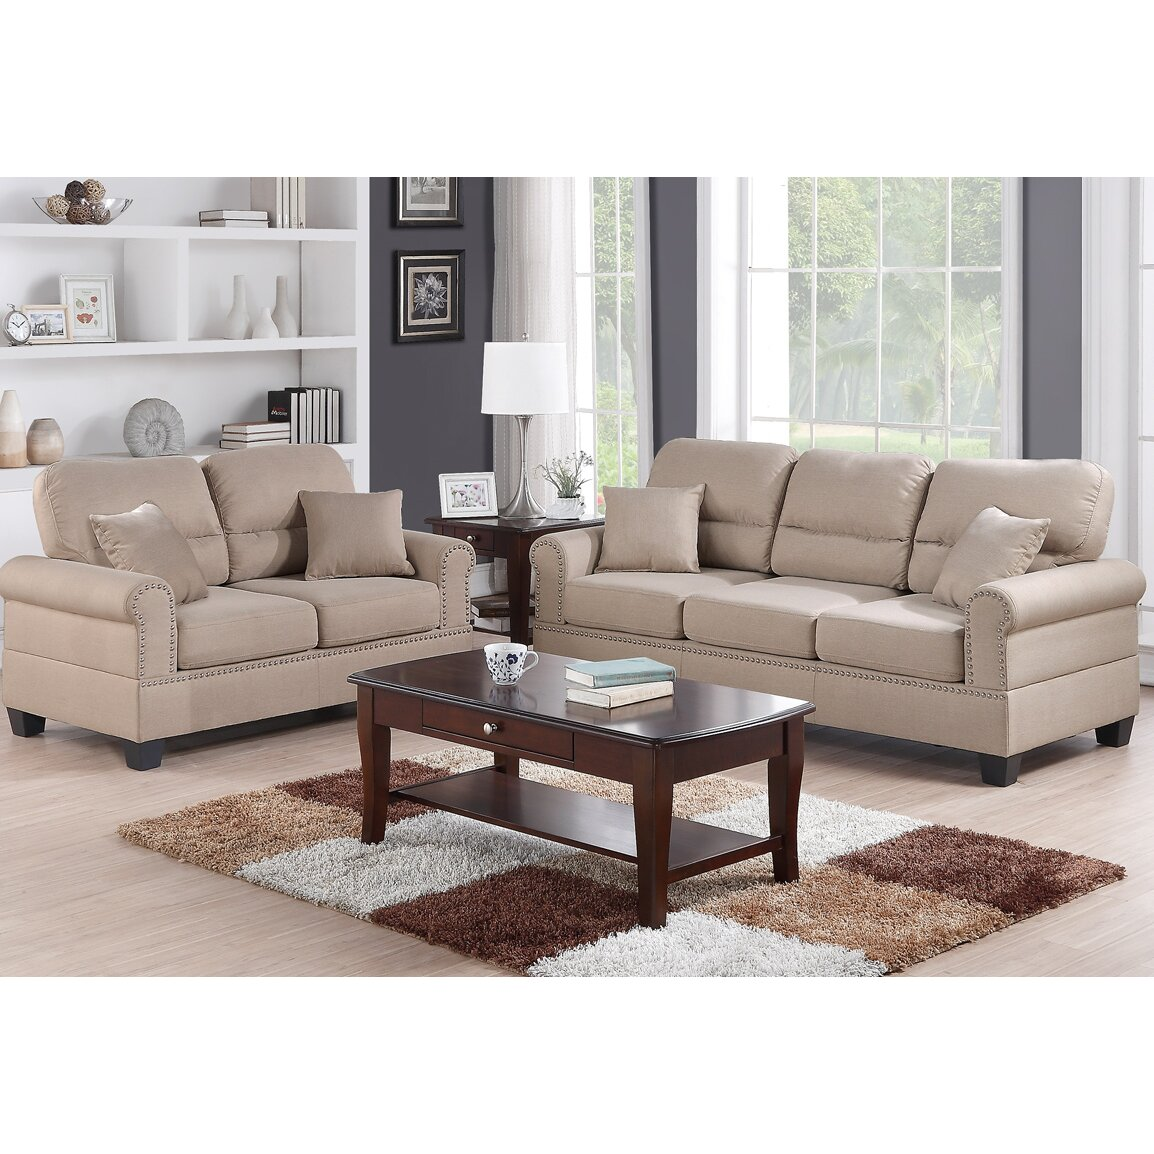 Poundex bobkona shelton sofa and loveseat set reviews for Drawing room setting